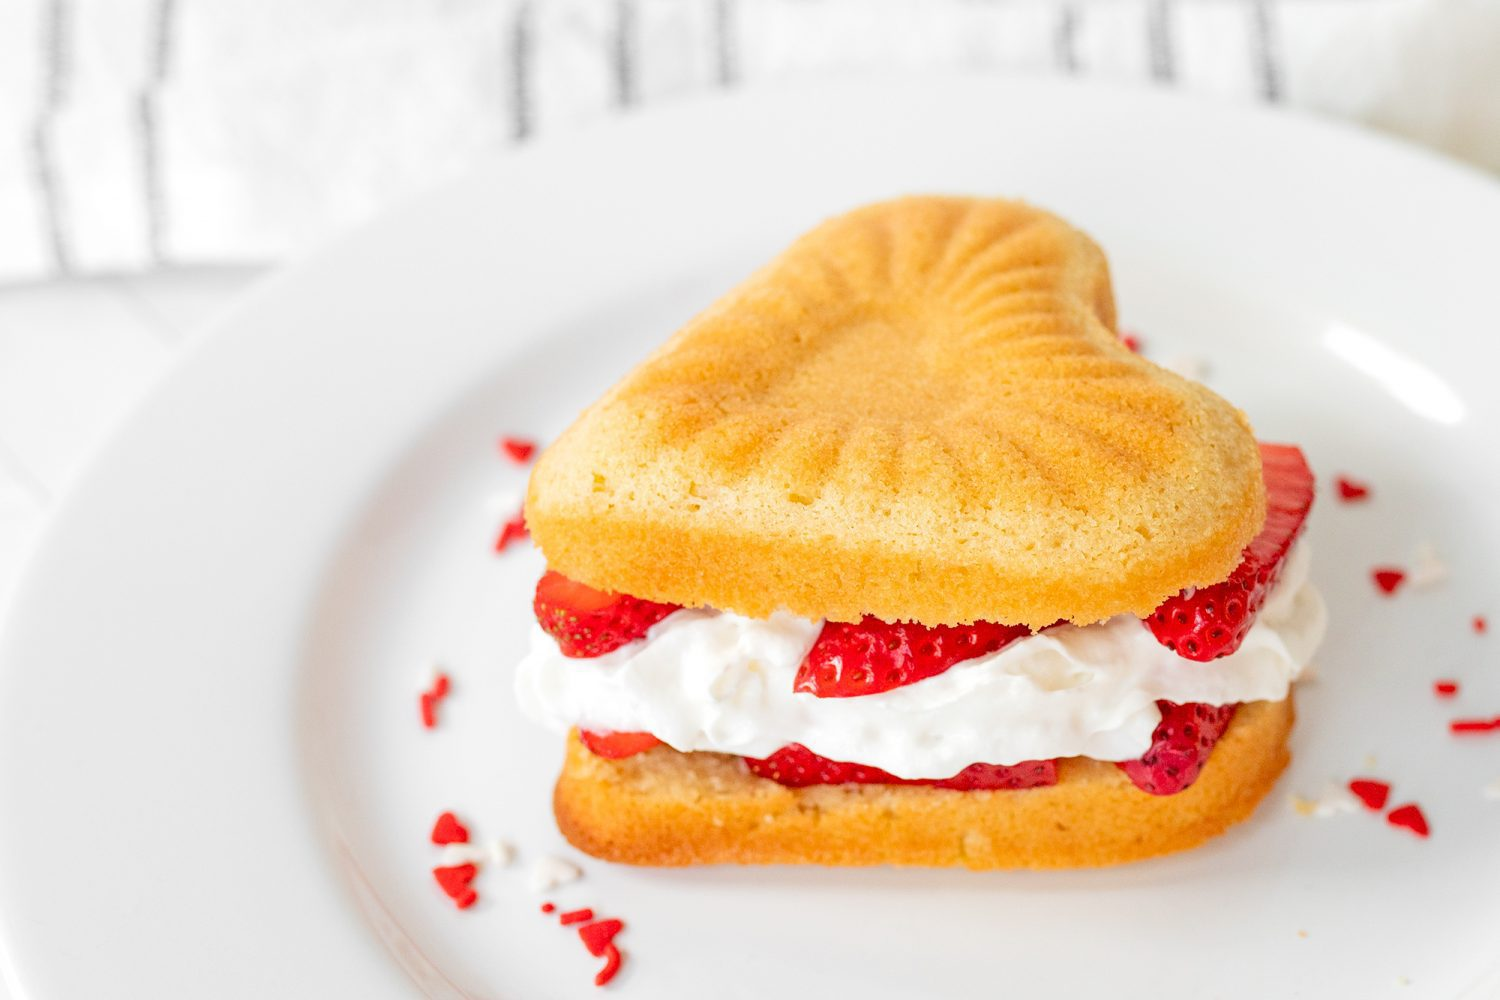 fresh strawberries and whipped cream, sandwiched between two pieces of pound cake